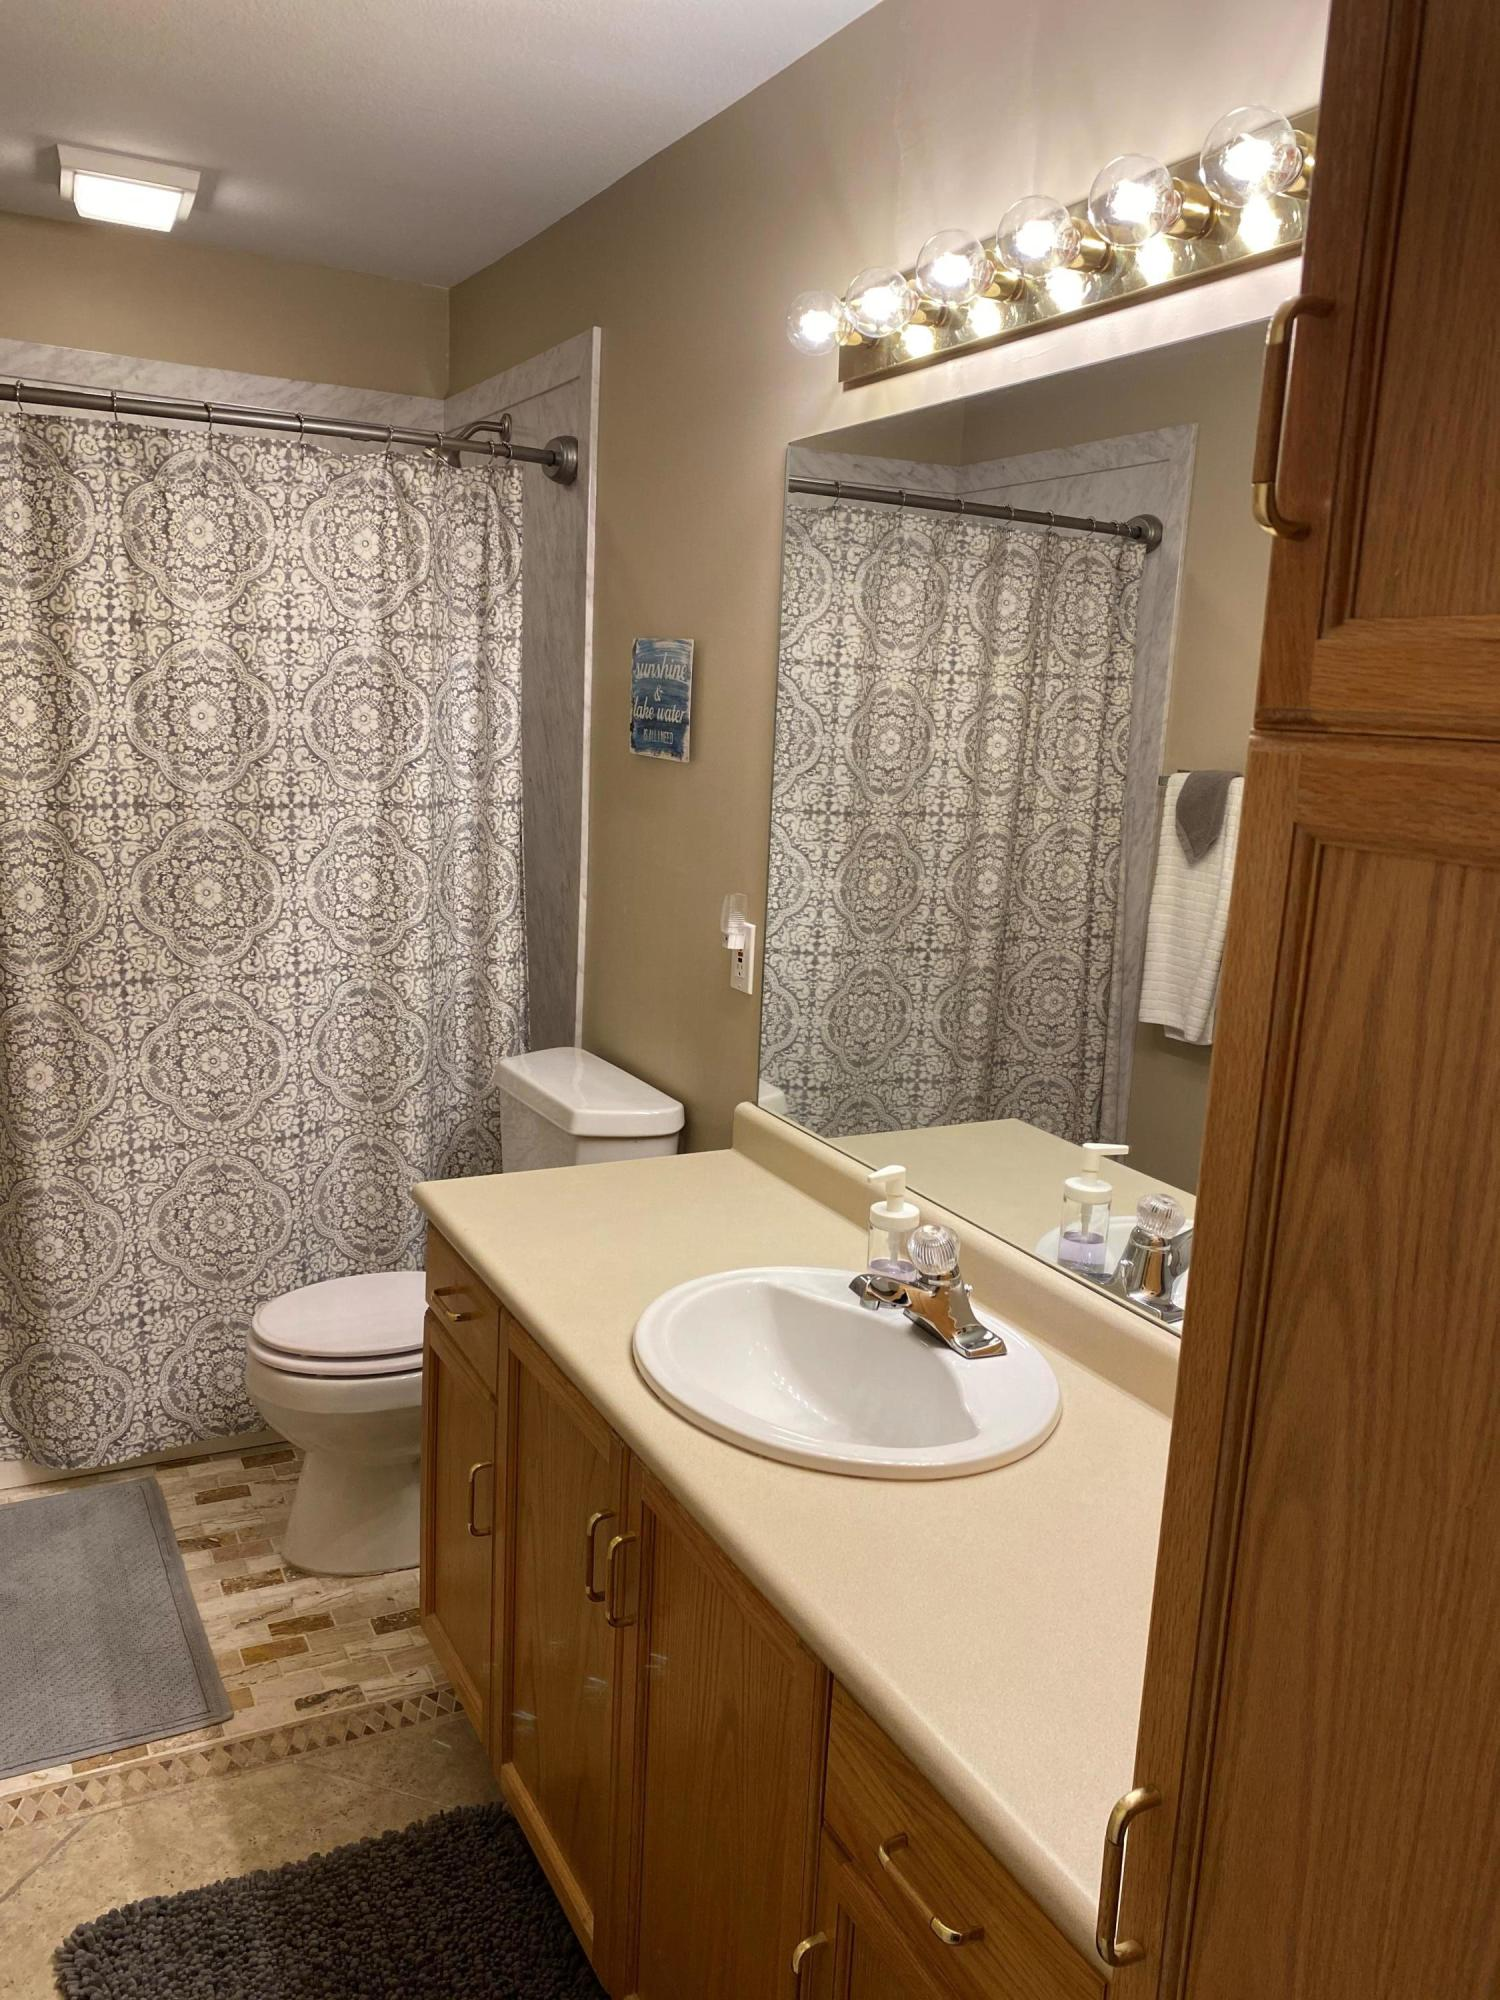 225 Lower Emerald Bay Circle UNIT #5 Hollister, MO 65672